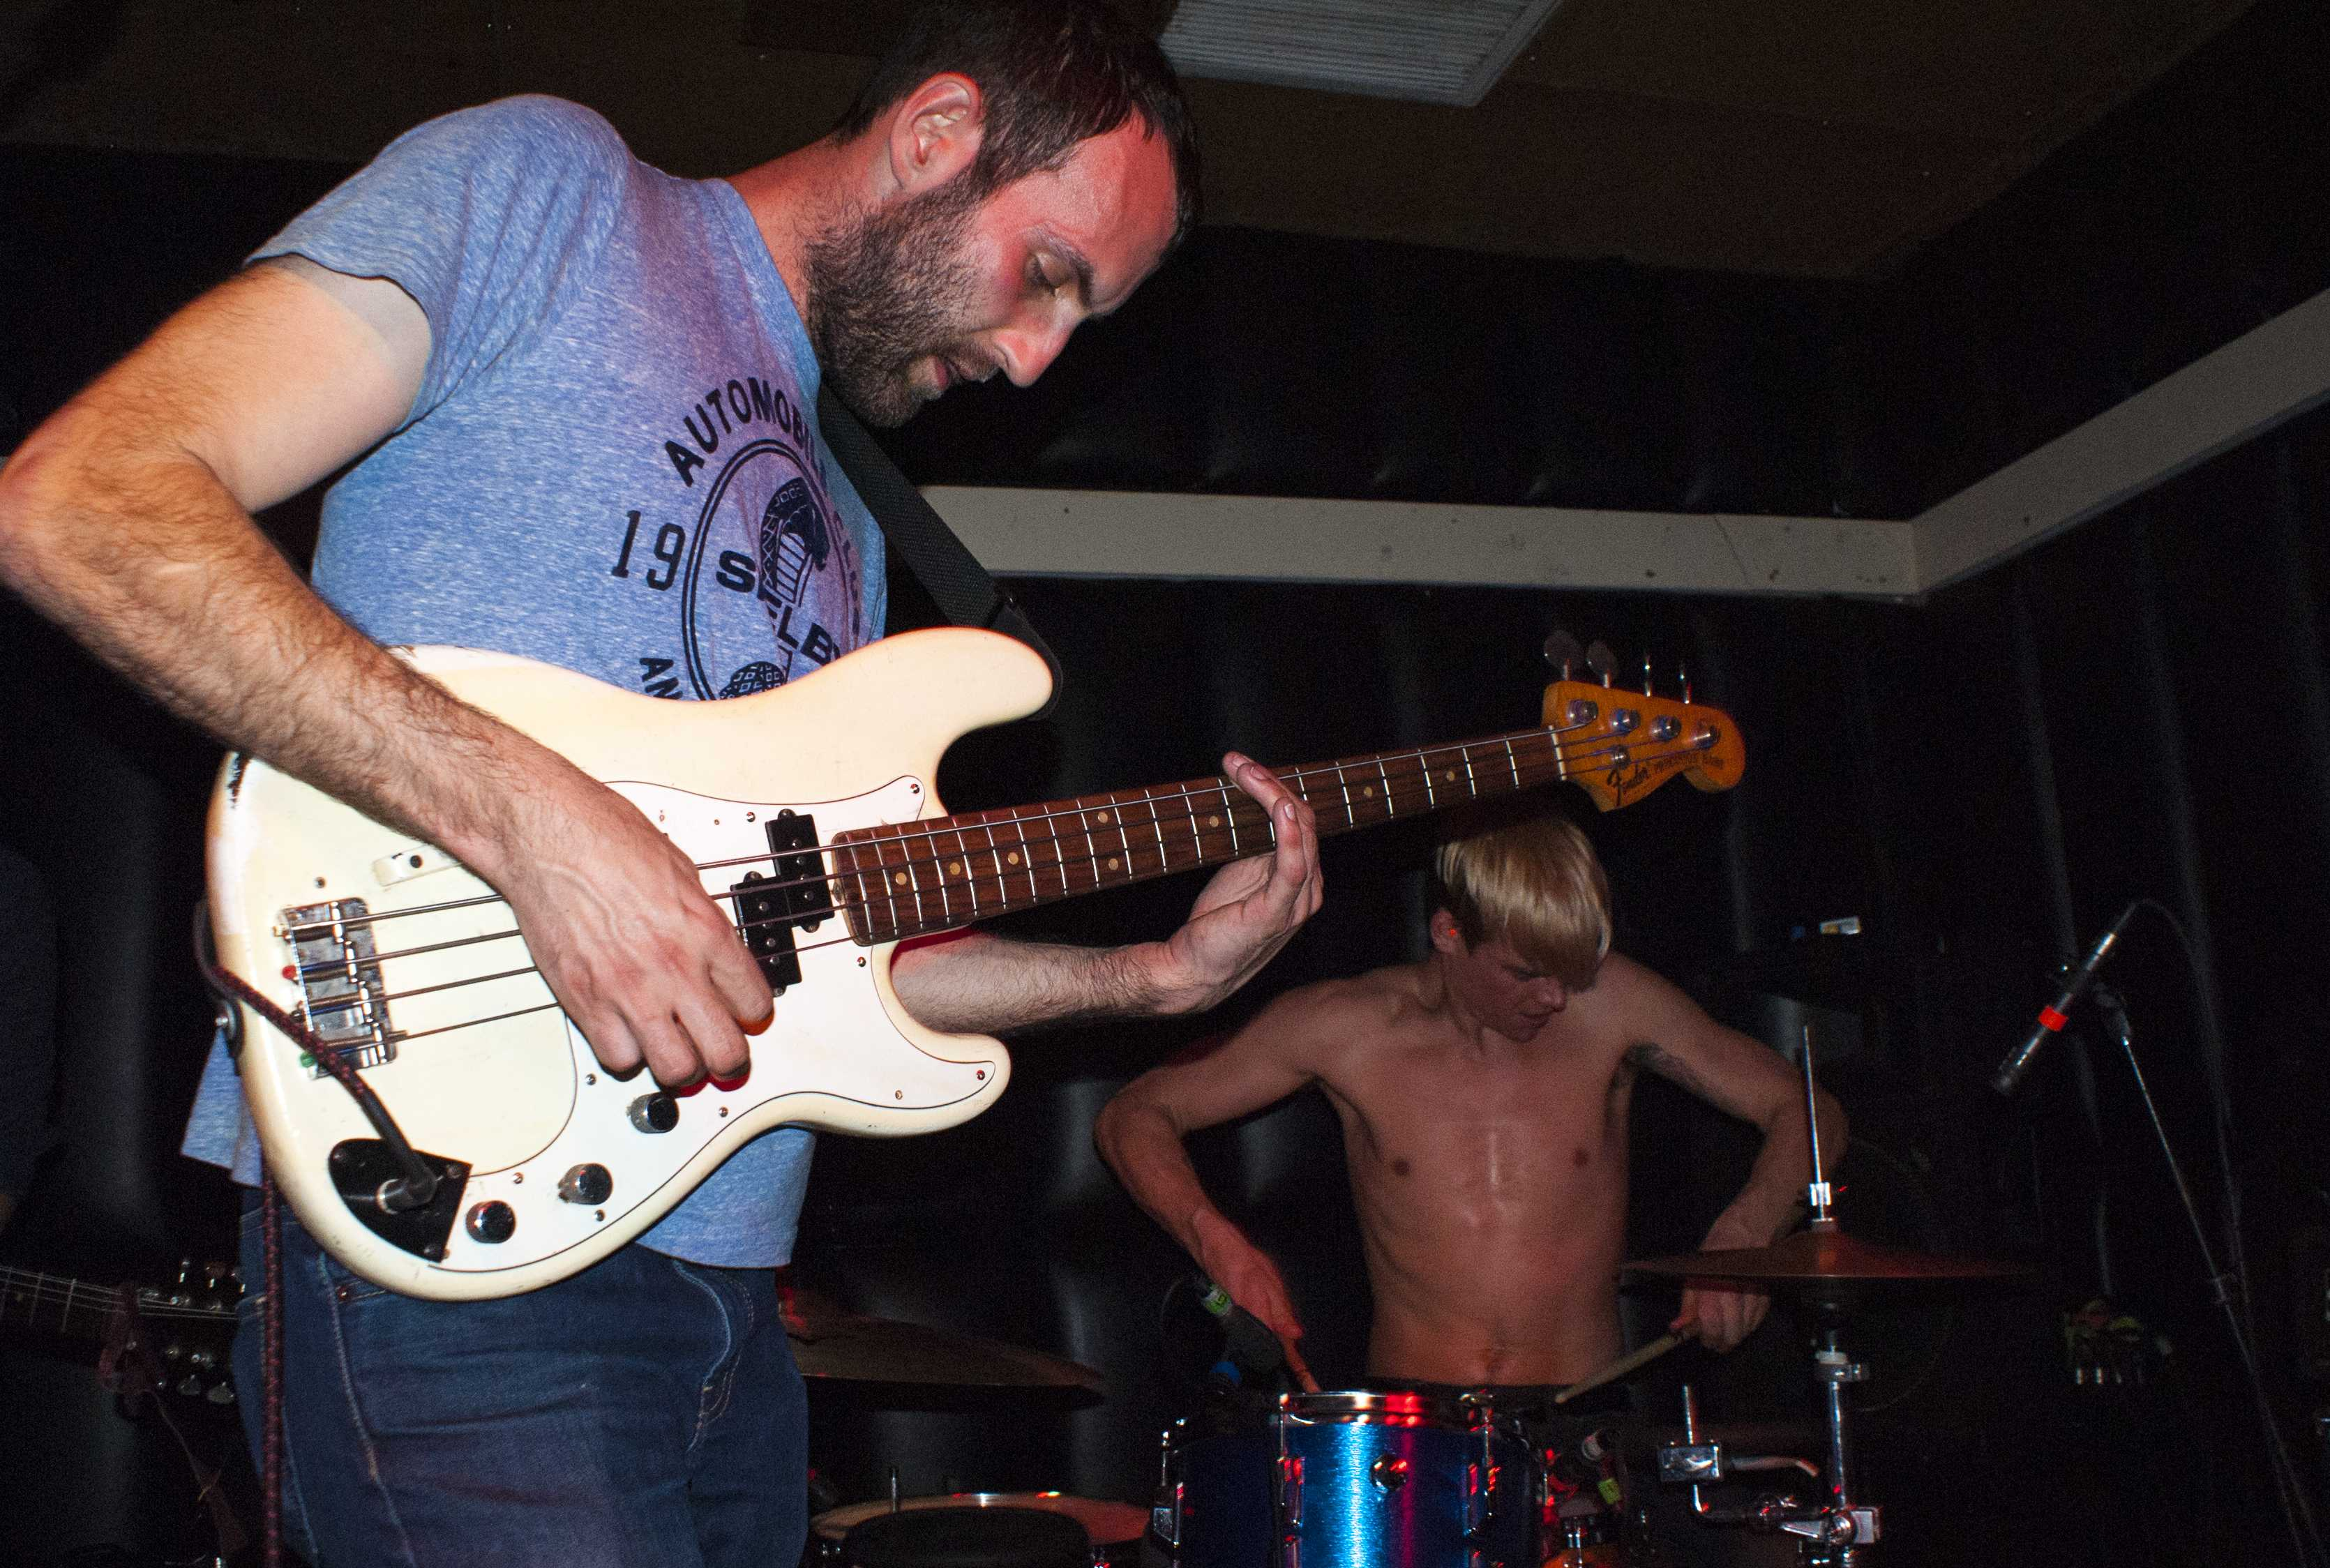 Alternative indie rockers Viet Cong bassist and singer Matt Flegel and drummer Mike Wallace perform to a packed house at the Soda Bar in San Diego on March 7. Photo credit: Torrey Spoerer